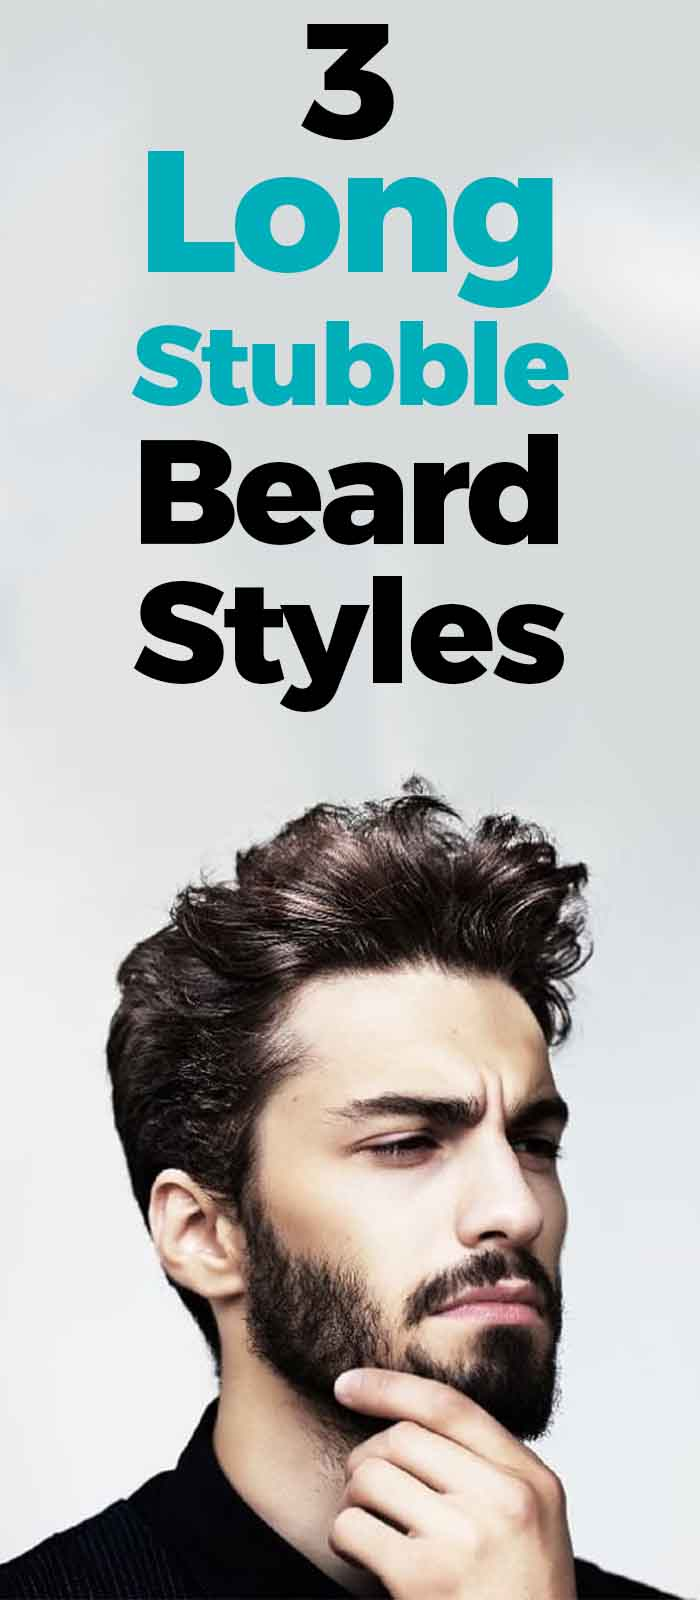 Full Stubble beard style for men!